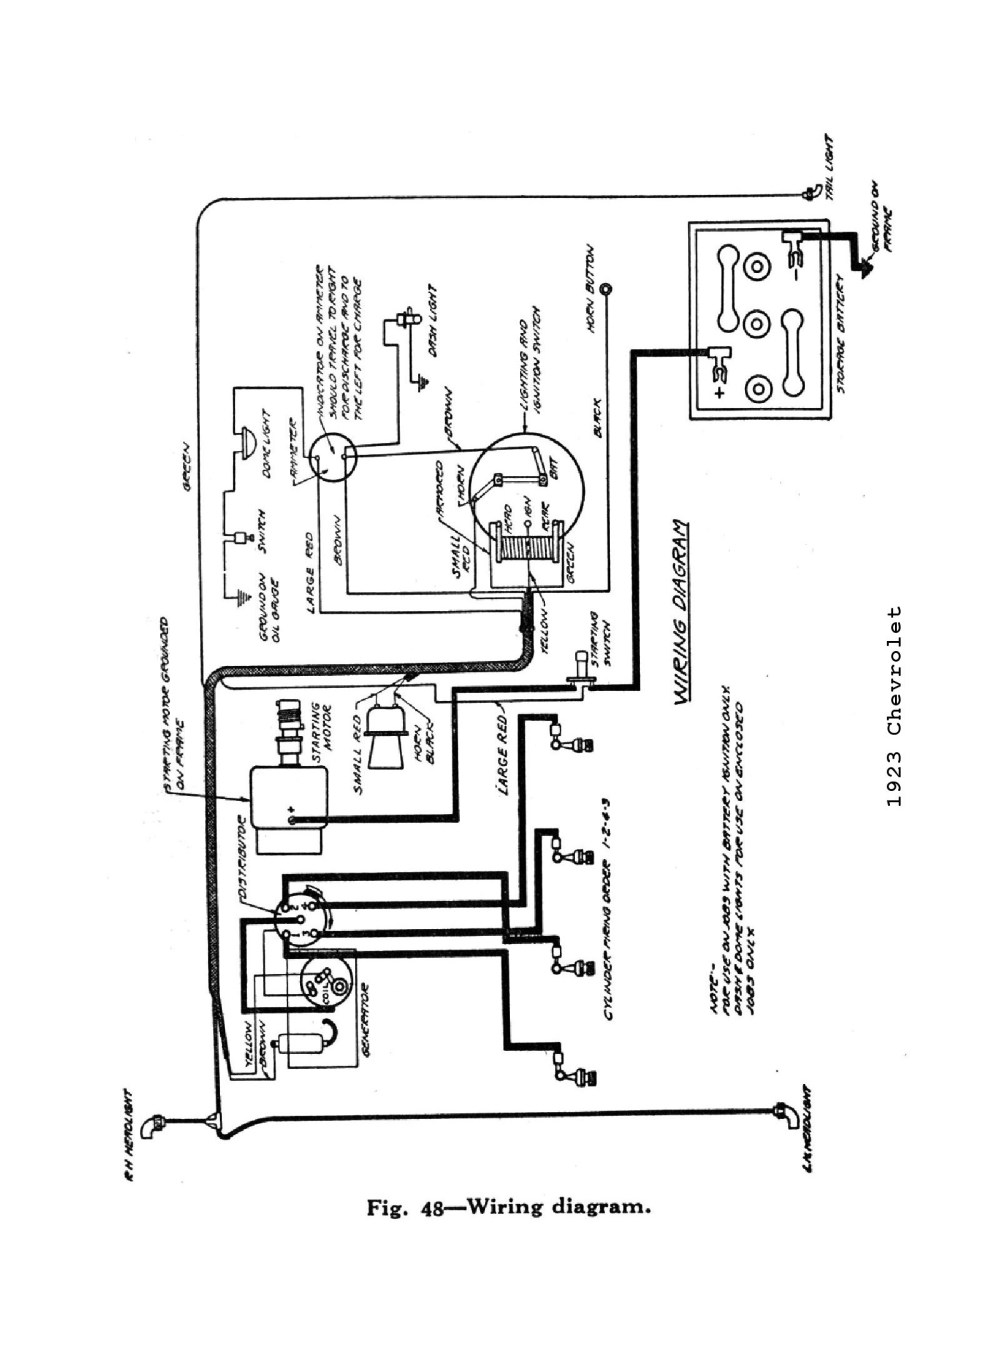 medium resolution of 1960 impala wiring diagram wiring diagram third level rh 3 15 22 jacobwinterstein com 1961 impala wiring diagram wiring diagram 1960 chevrolet parkwood